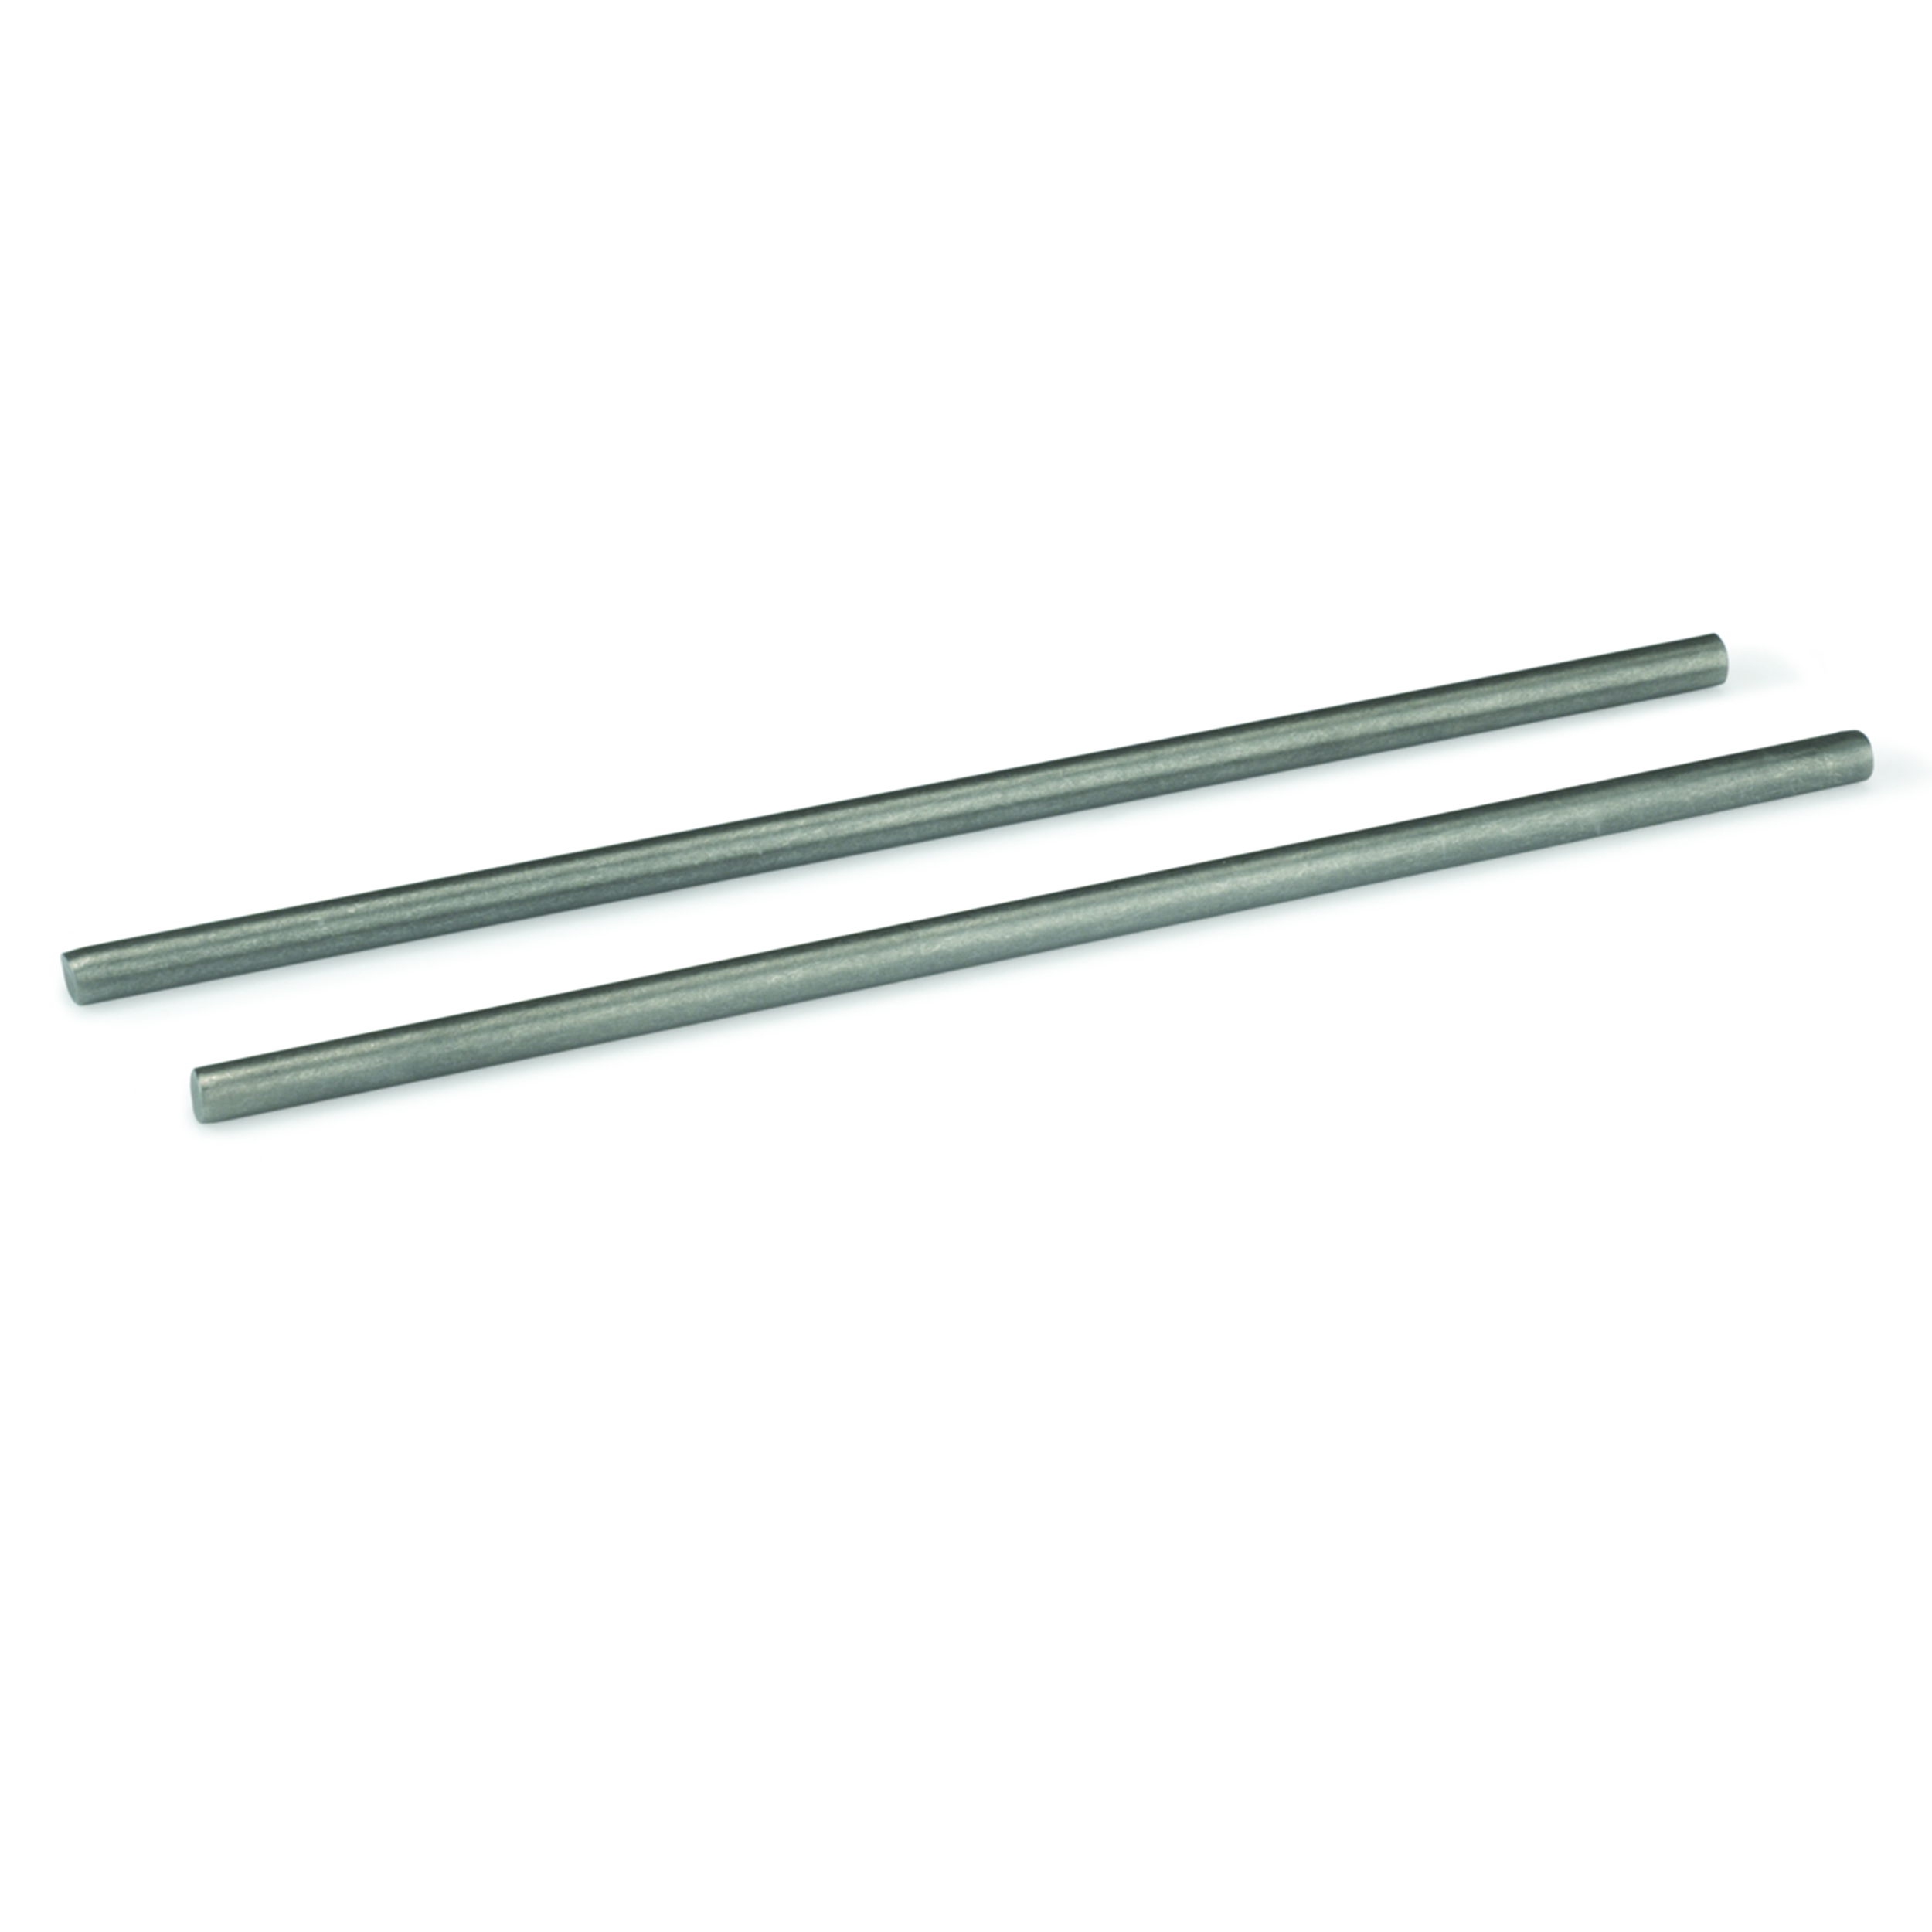 303 Stainless Steel Knife Pin Stock 3/16